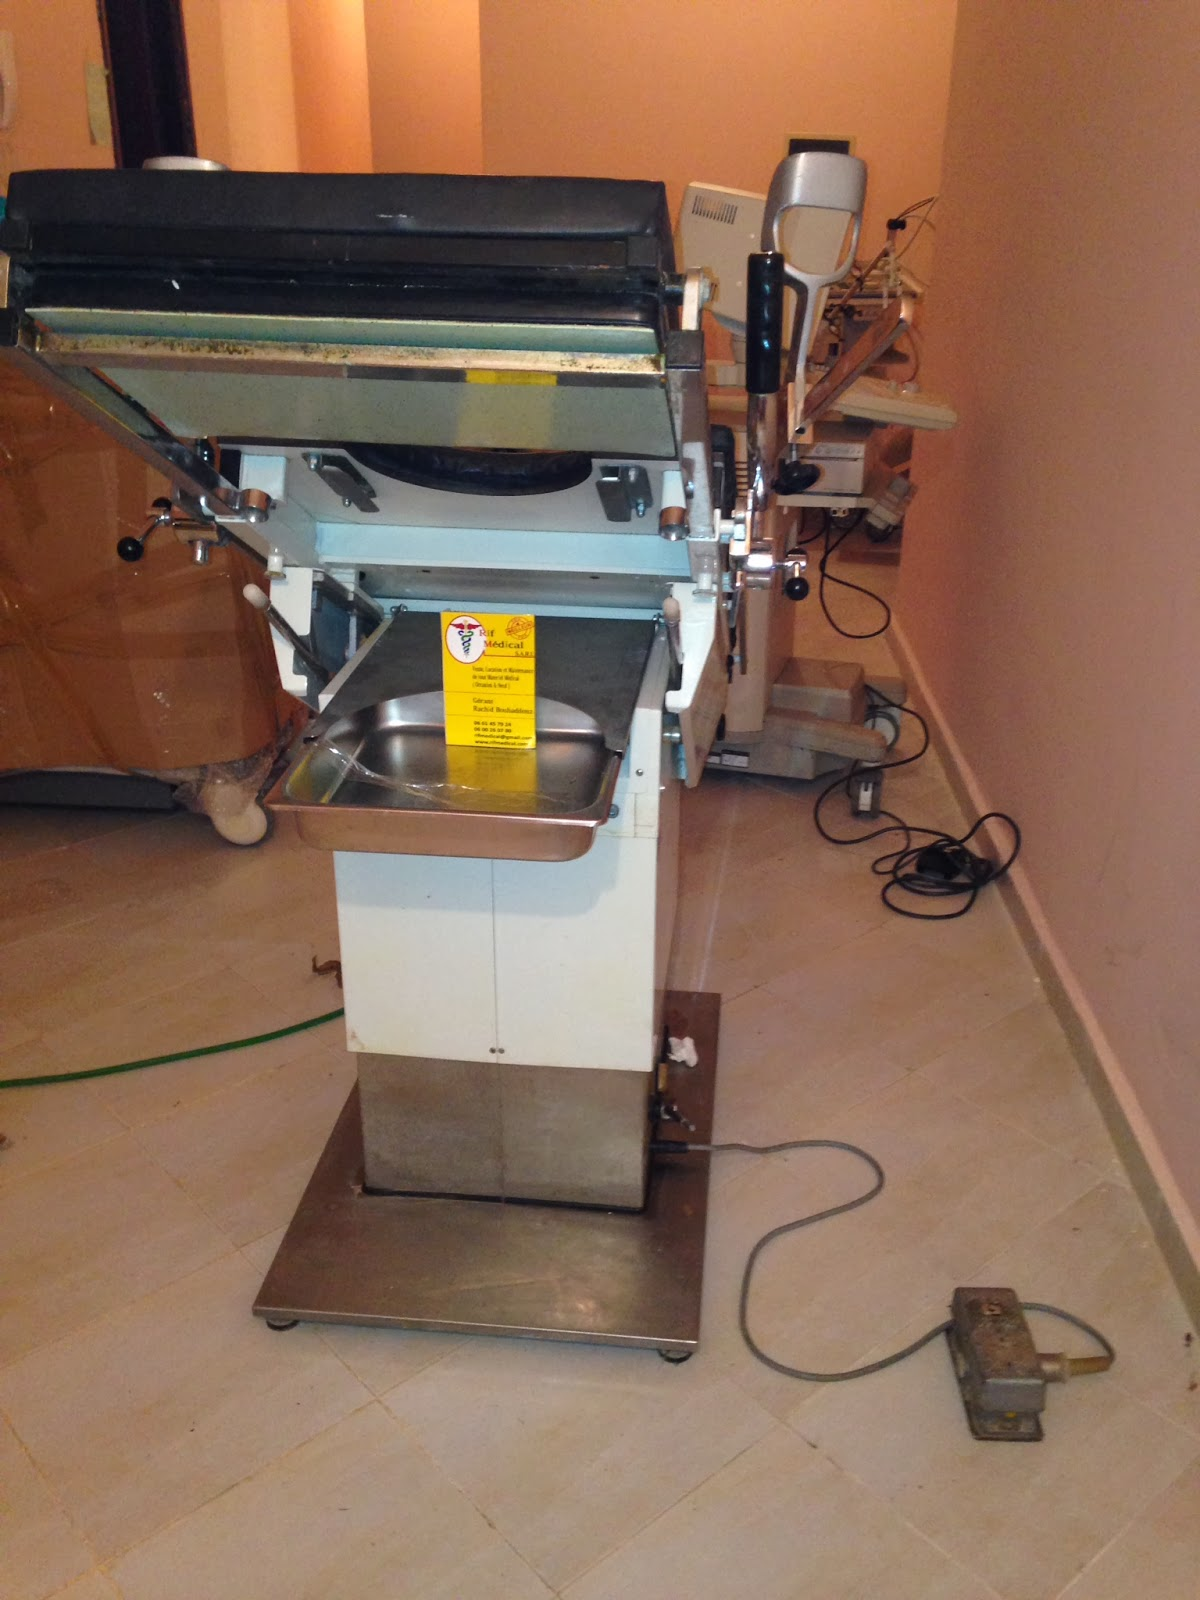 Rif medical sarl echographie maroc occasion mat riel - Table osteopathie electrique occasion ...